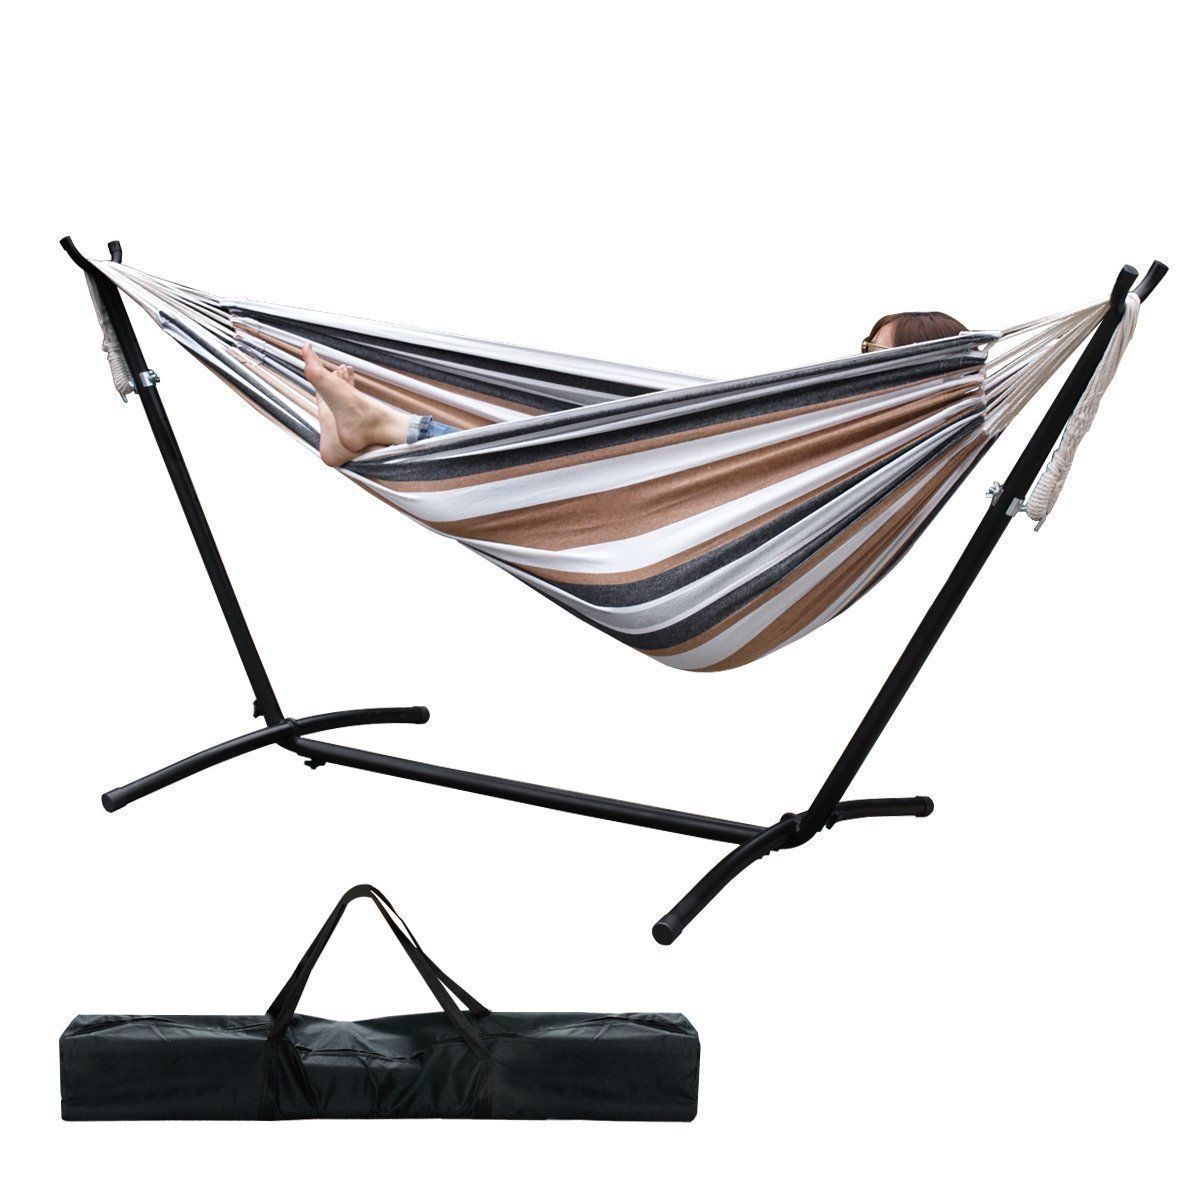 GHP 30.64-Lbs Capacity Cotton Coffe Stripe Double Hammock with Steel Stand & Handbag